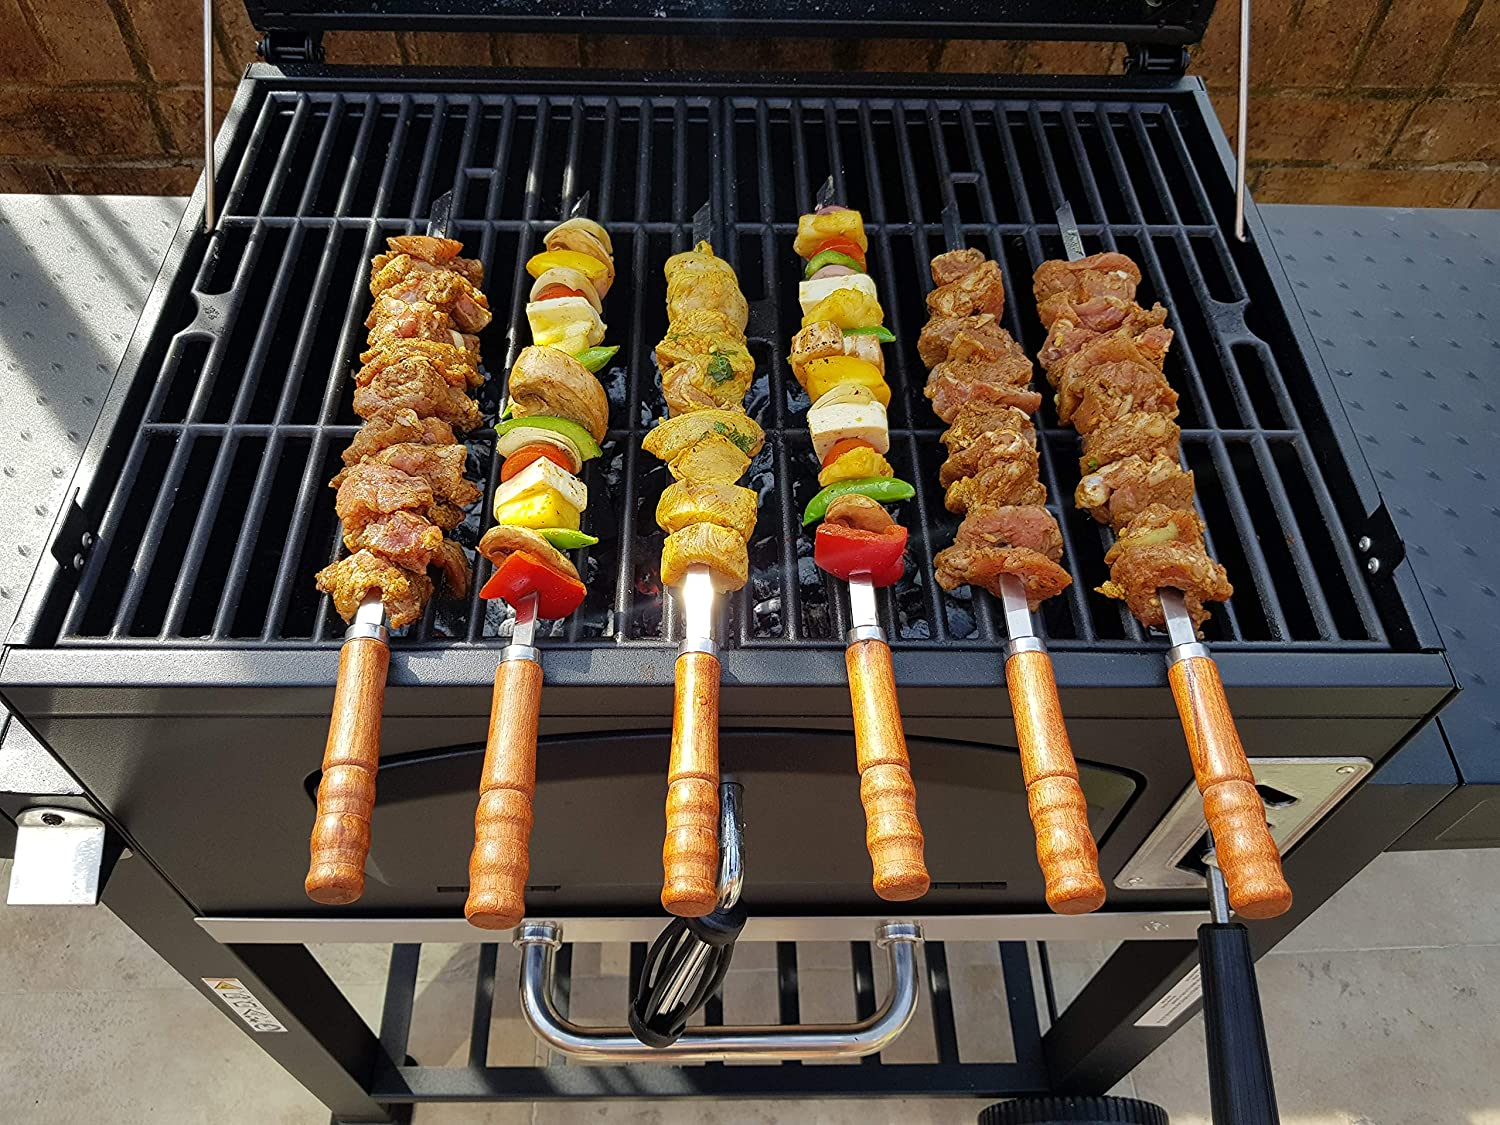 Length 41cm//30cm Width 1cm Thick 2mm with Storage Pouch JD Europe Kebab BBQ Stainless Steel Skewers 6pcs with Wooden Handles